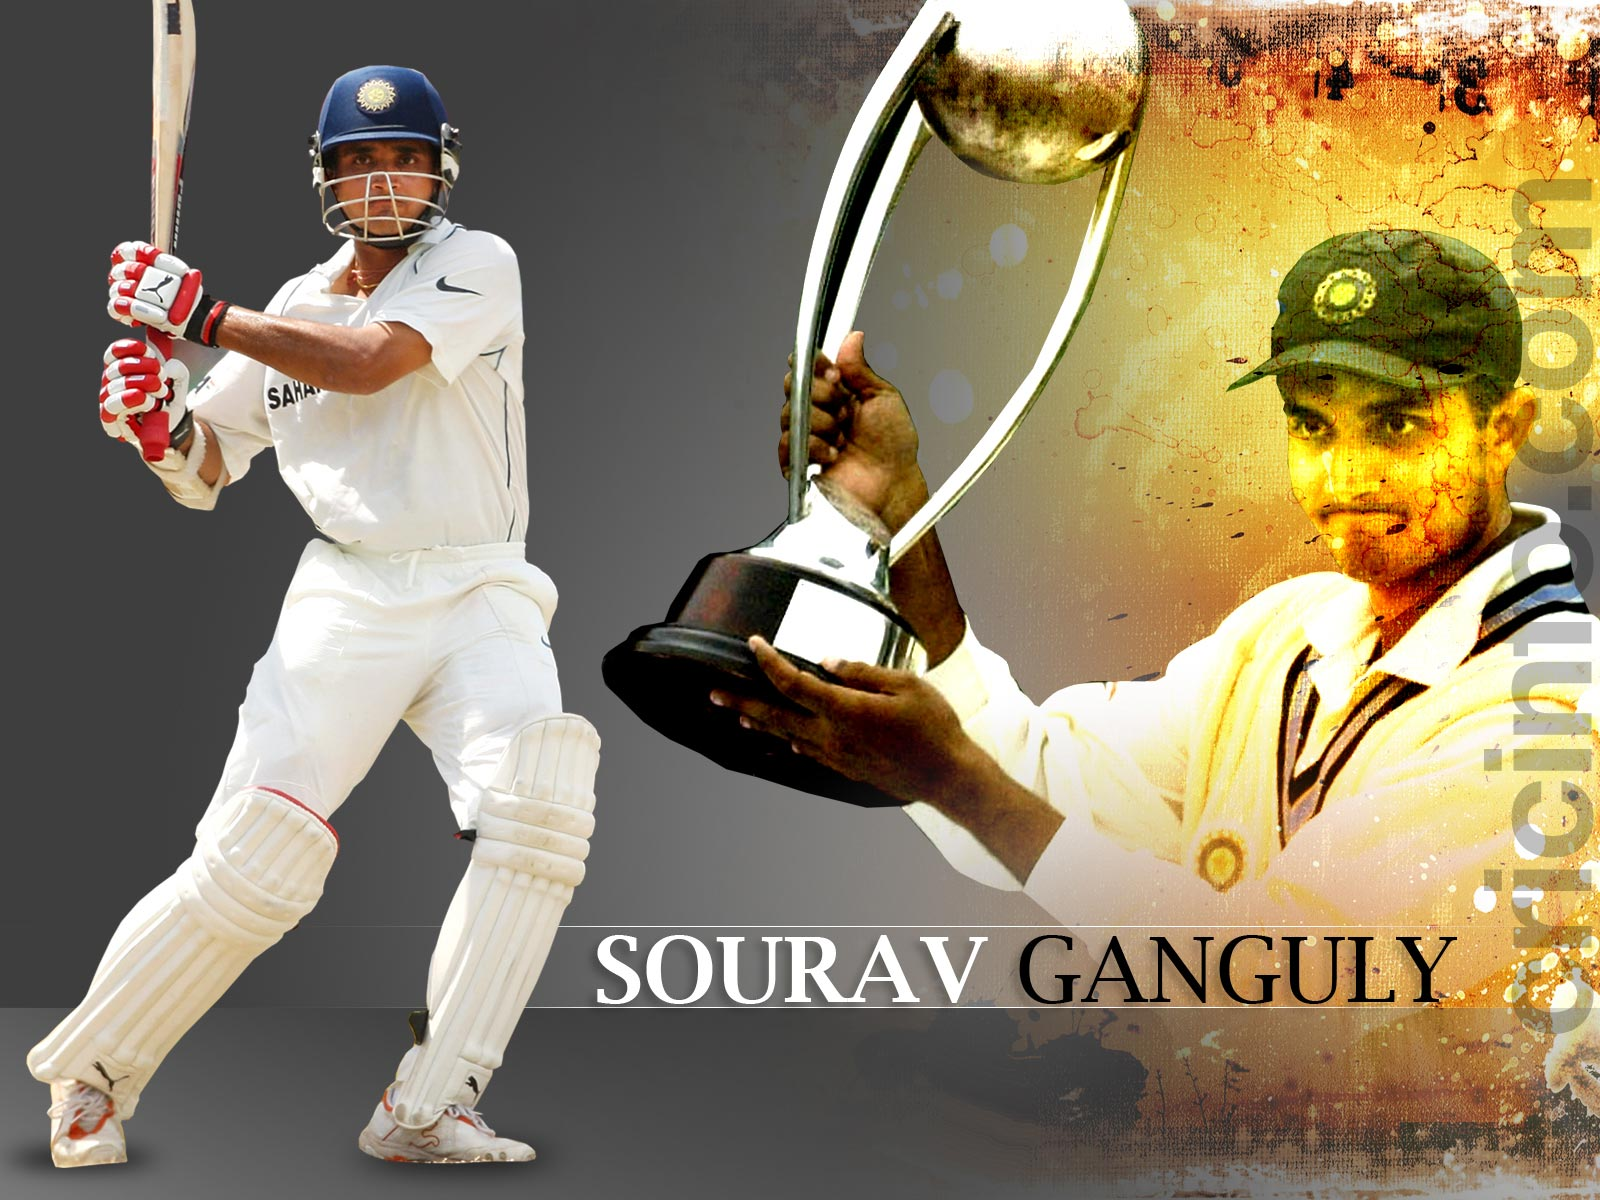 Sourav ganguly wallpapers hd 5g hd wallpapers nvjuhfo Image collections